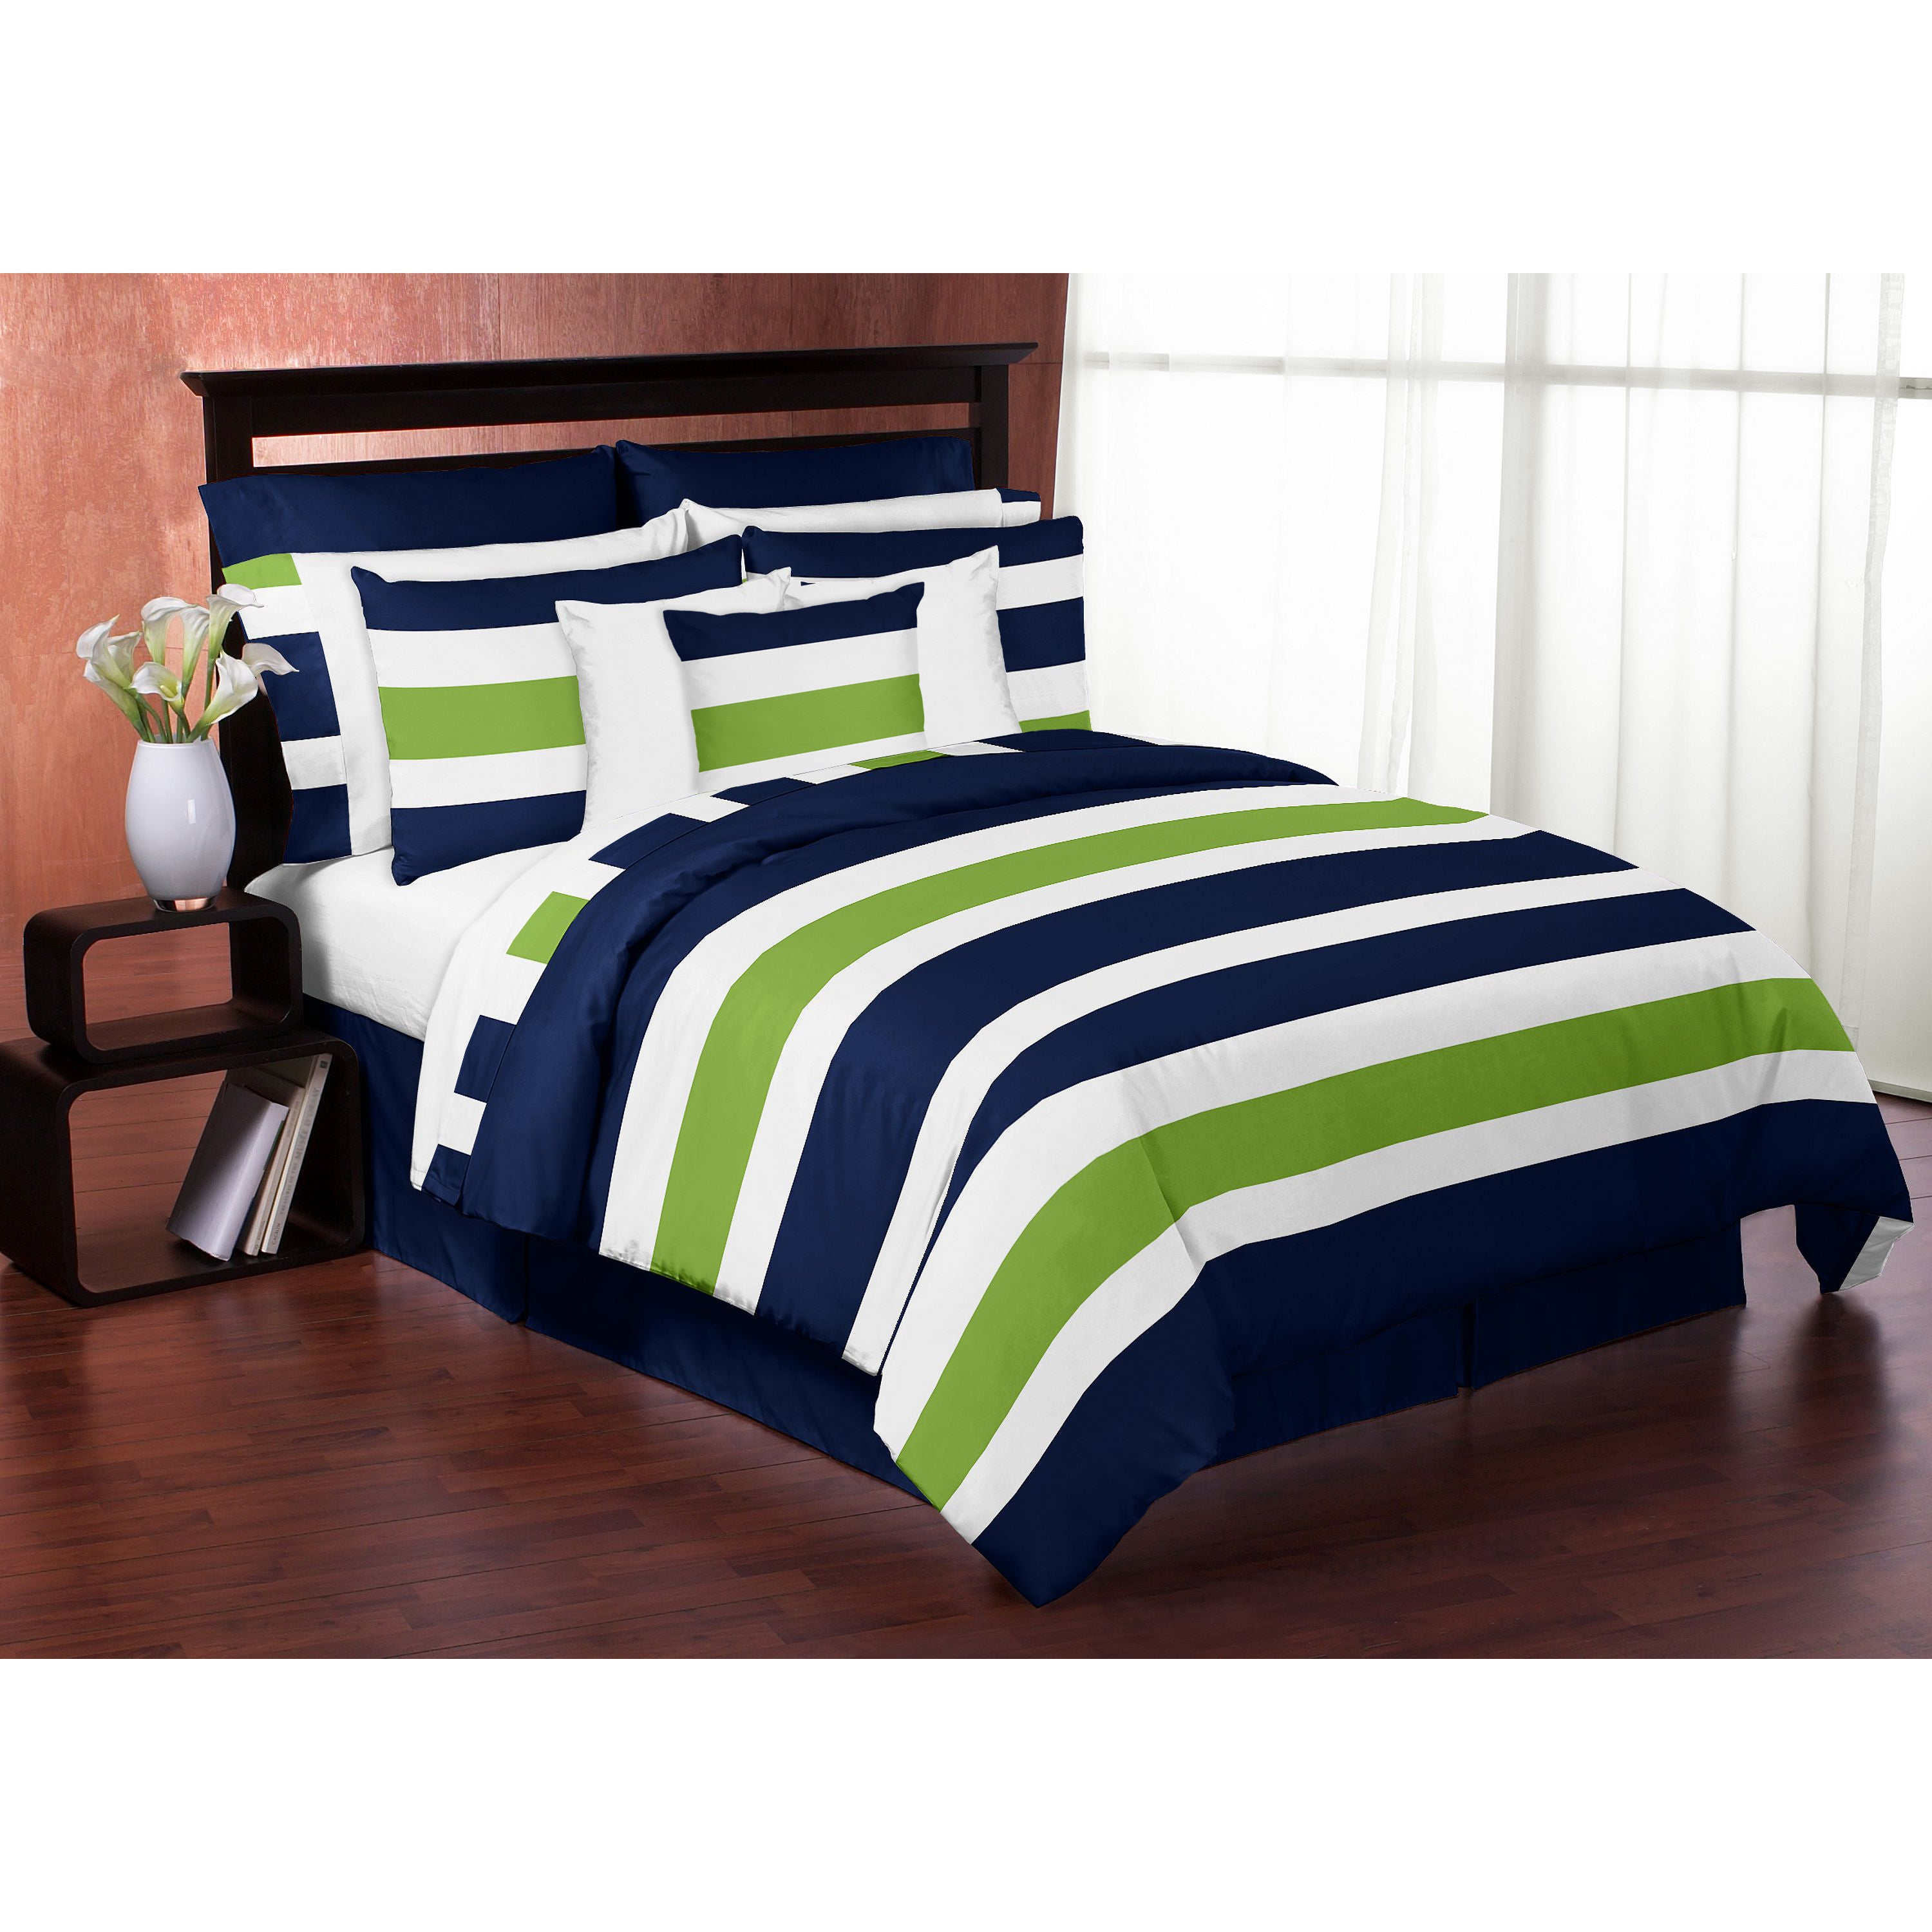 Navy and Lime Green on White Stripe Full Queen 3 piece forter Set